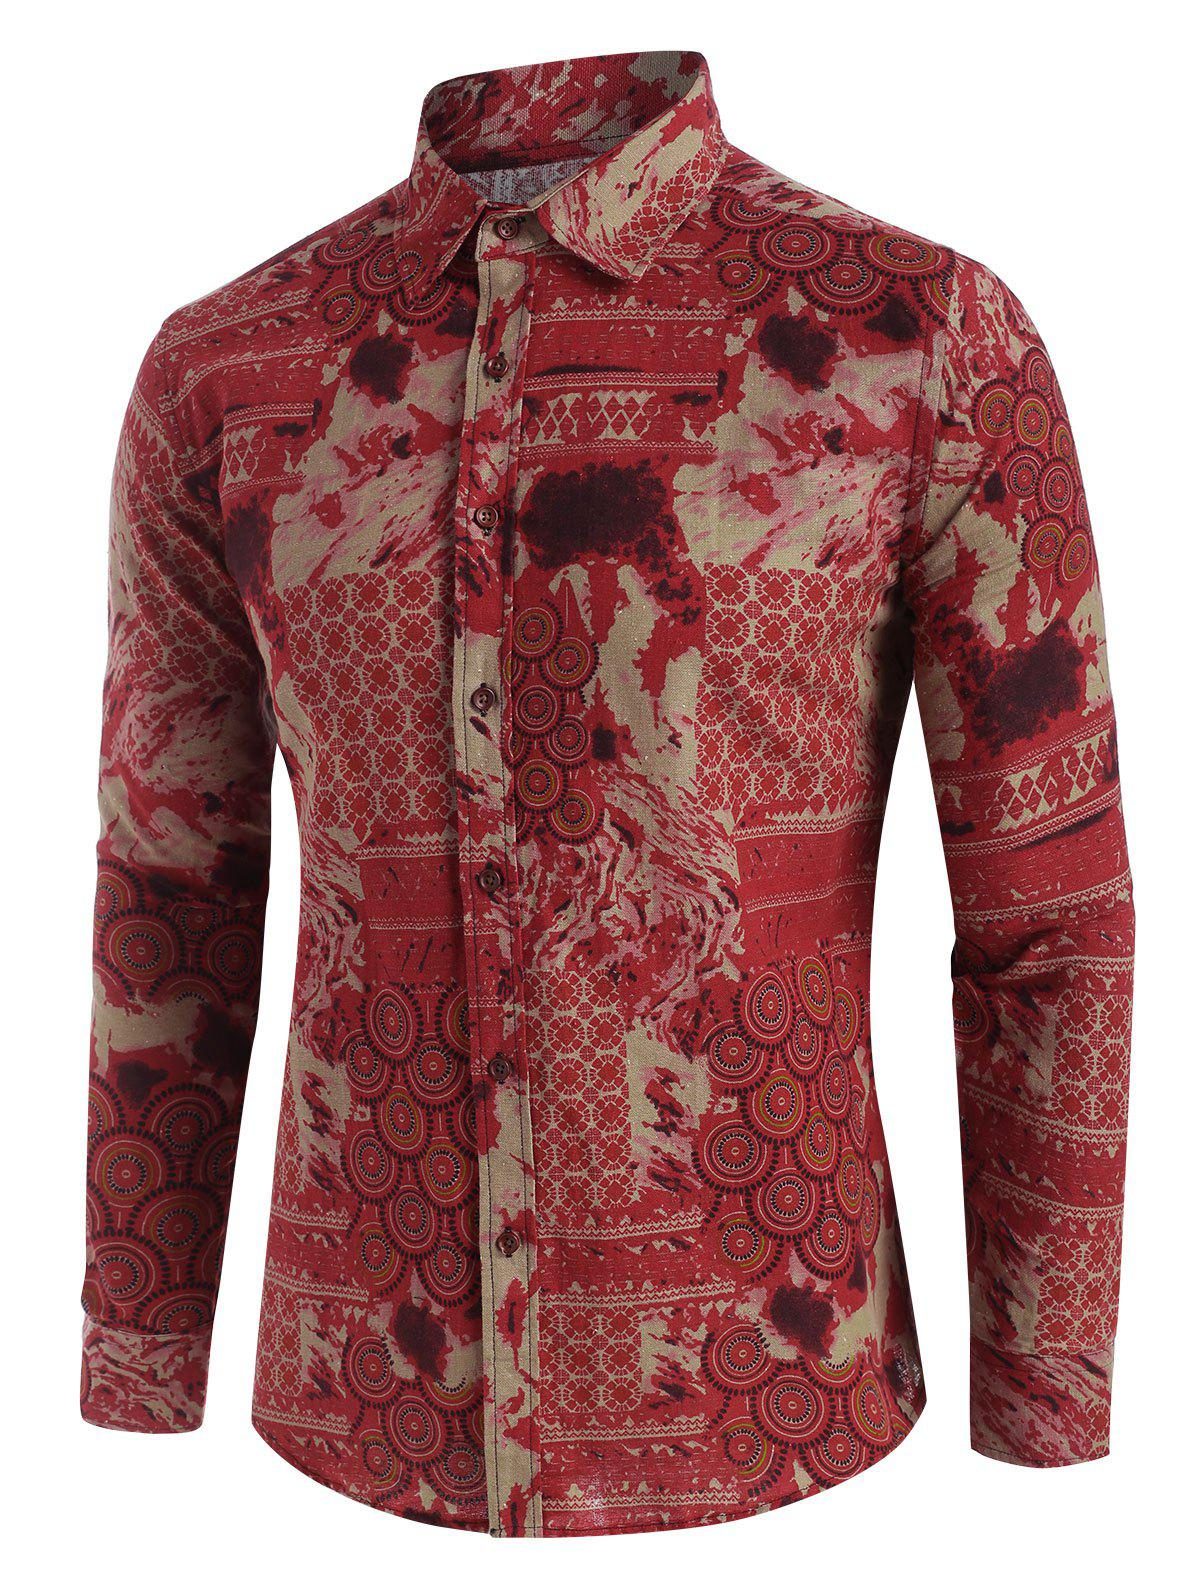 Affordable Seamless Round Pattern Long Sleeve Button Up Shirt